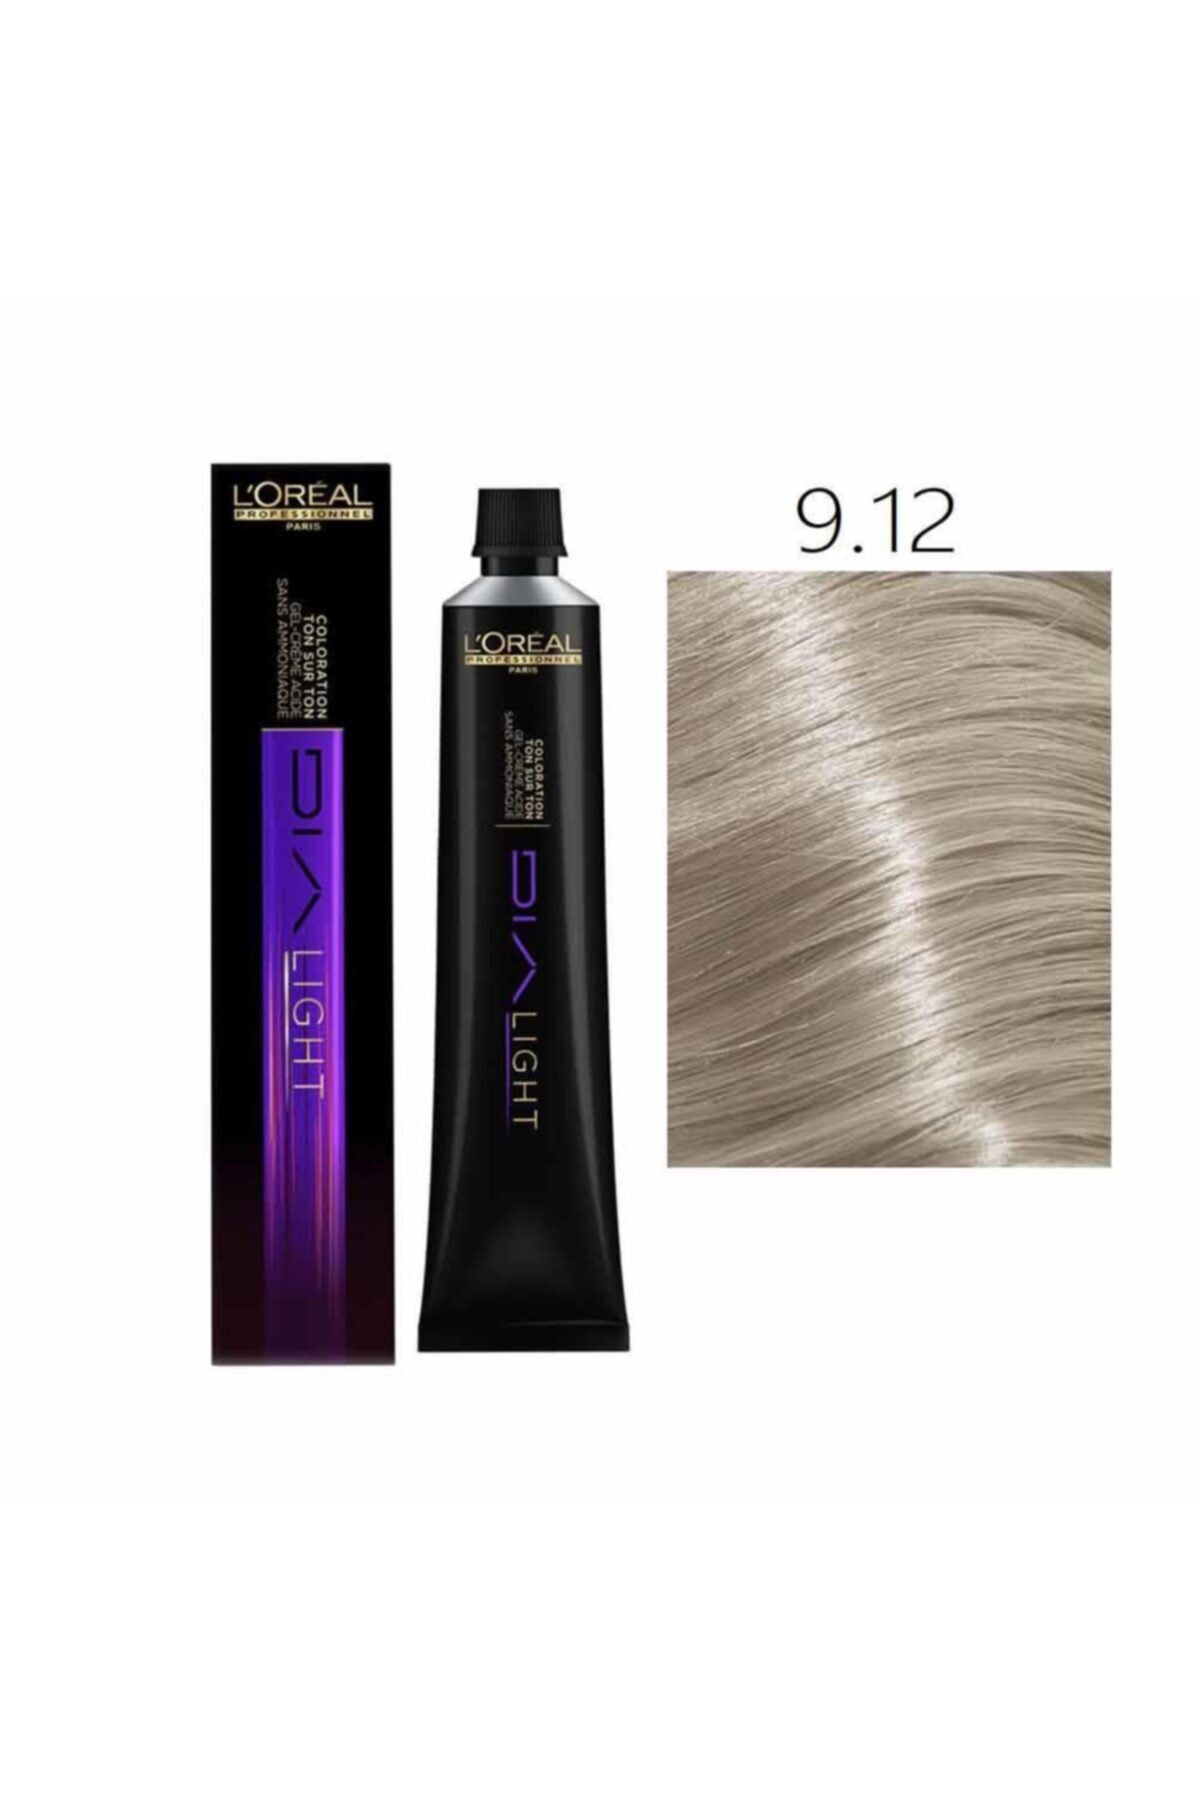 L'oreal Professionnel Dia Light 9.12 Saç Boyası 50 ml 1